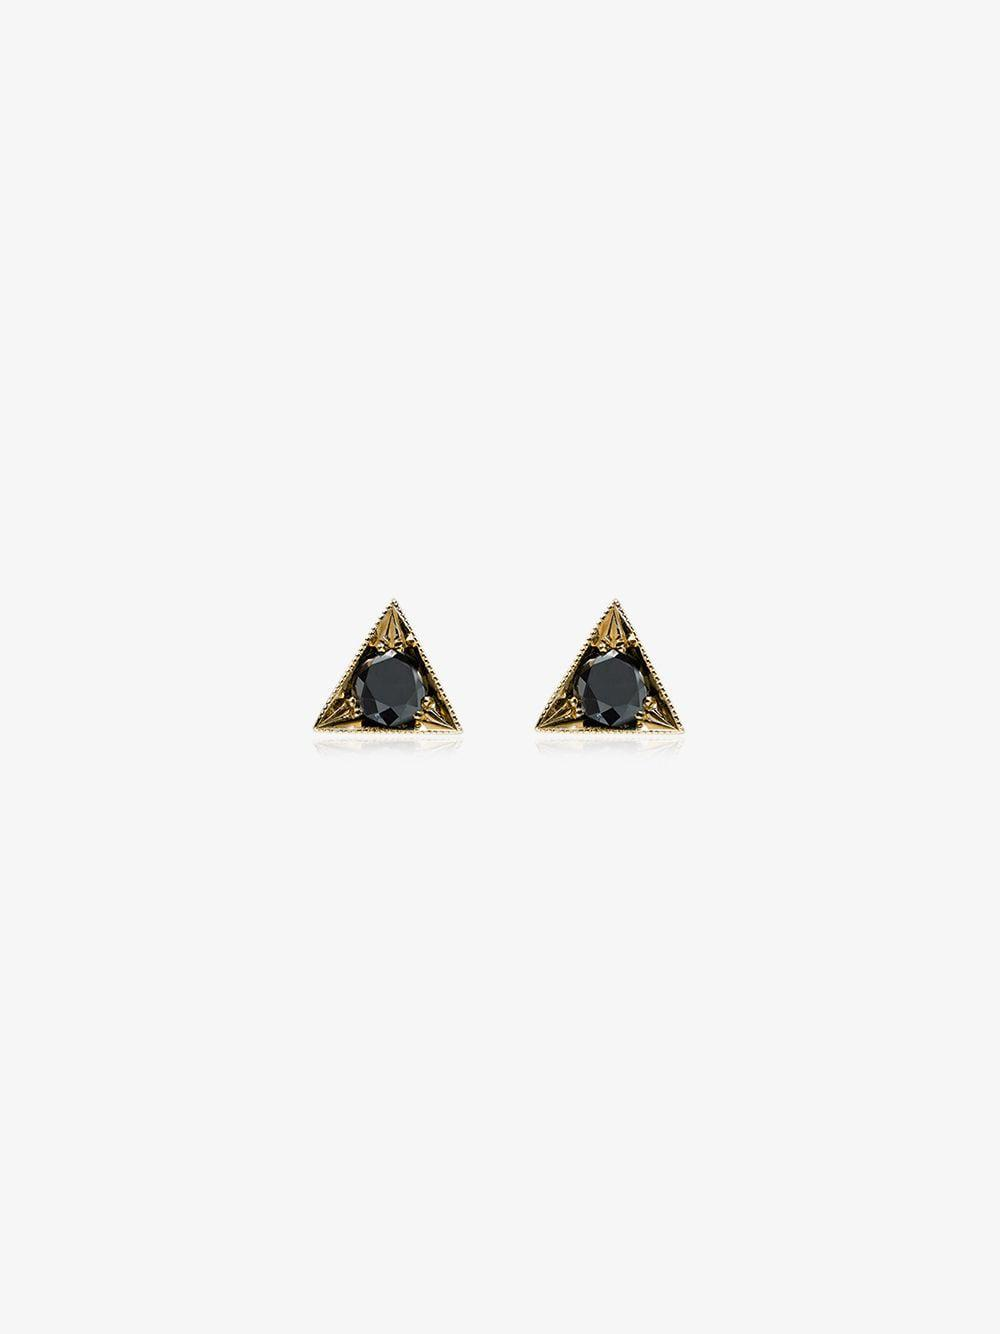 24d07c7d0 Lyst - Lizzie Mandler 18k Gold Triangle Studs With Black Diamond in ...